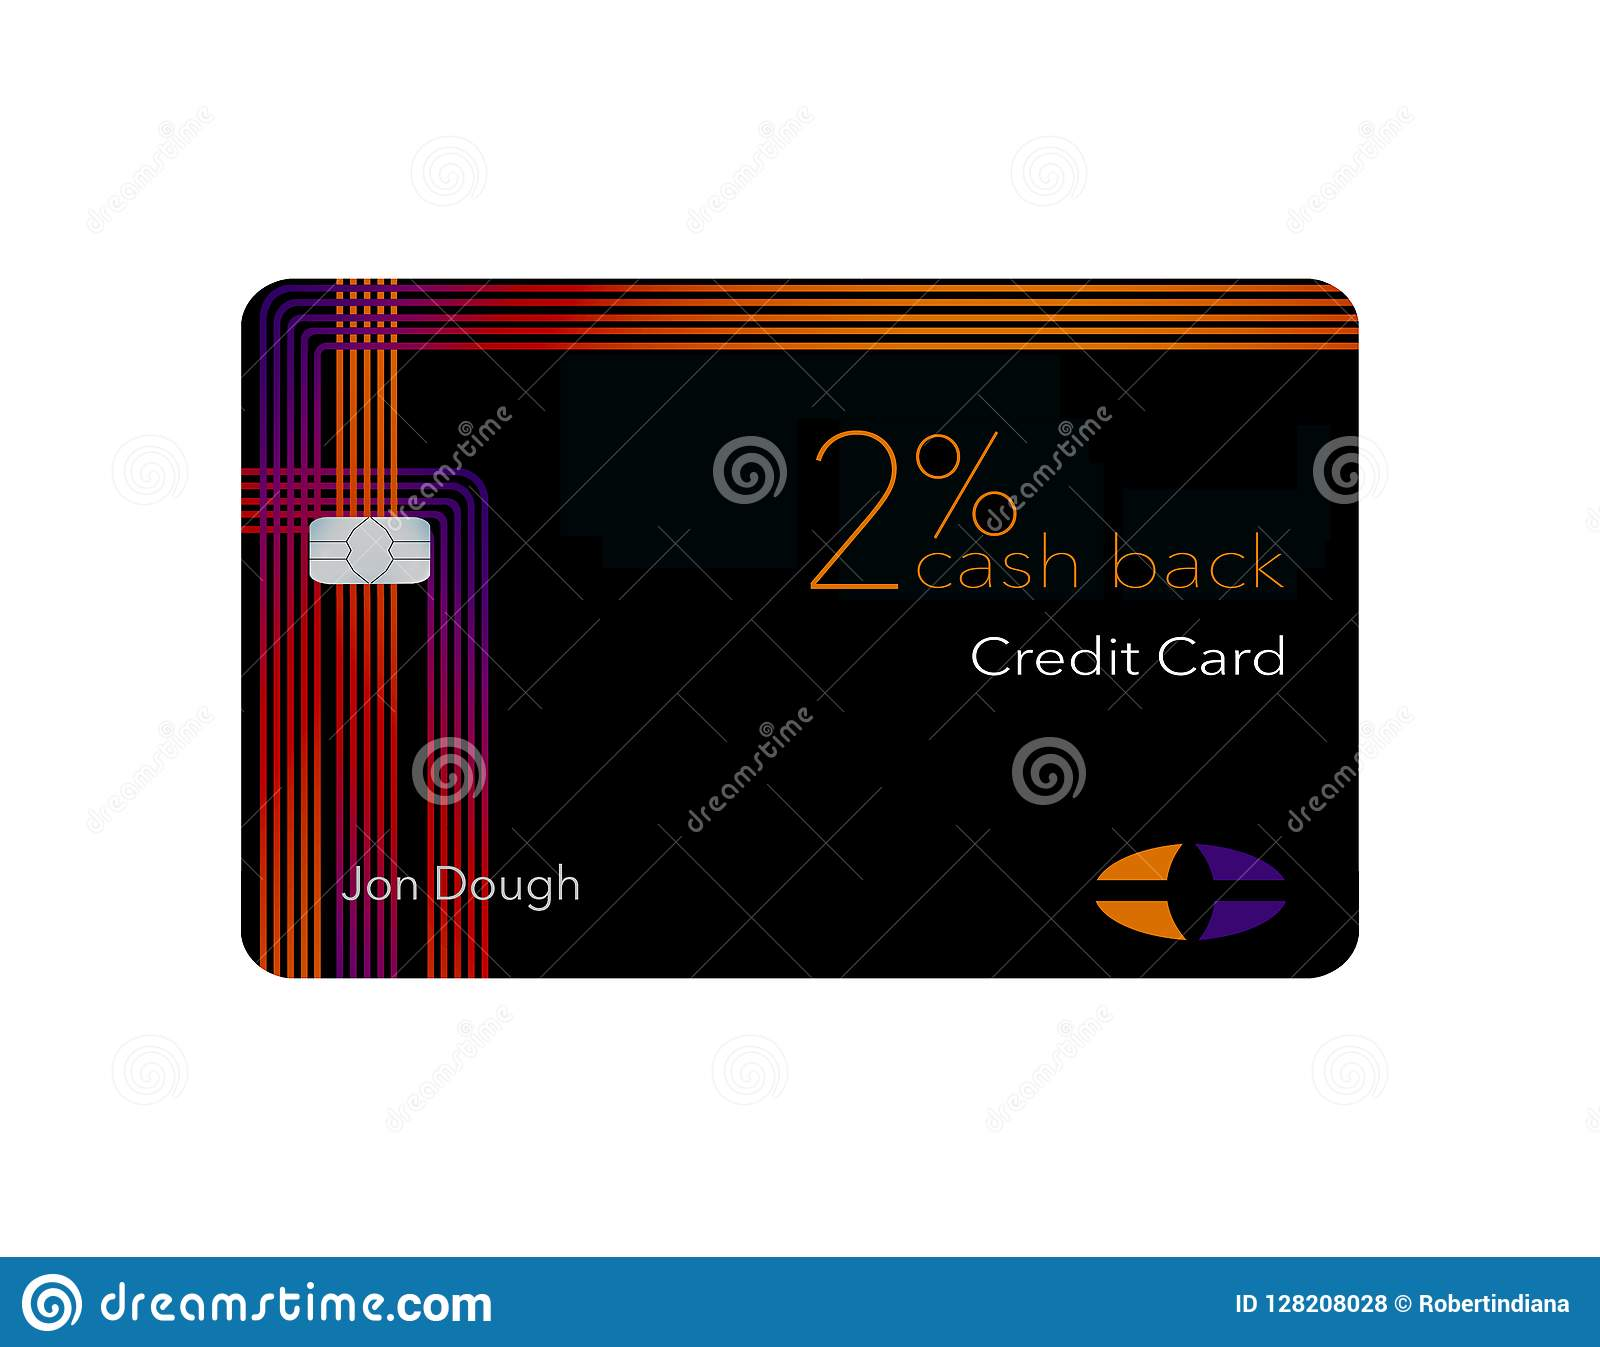 Here Is A 2-percent Cash Back Credit Card. This Card Is